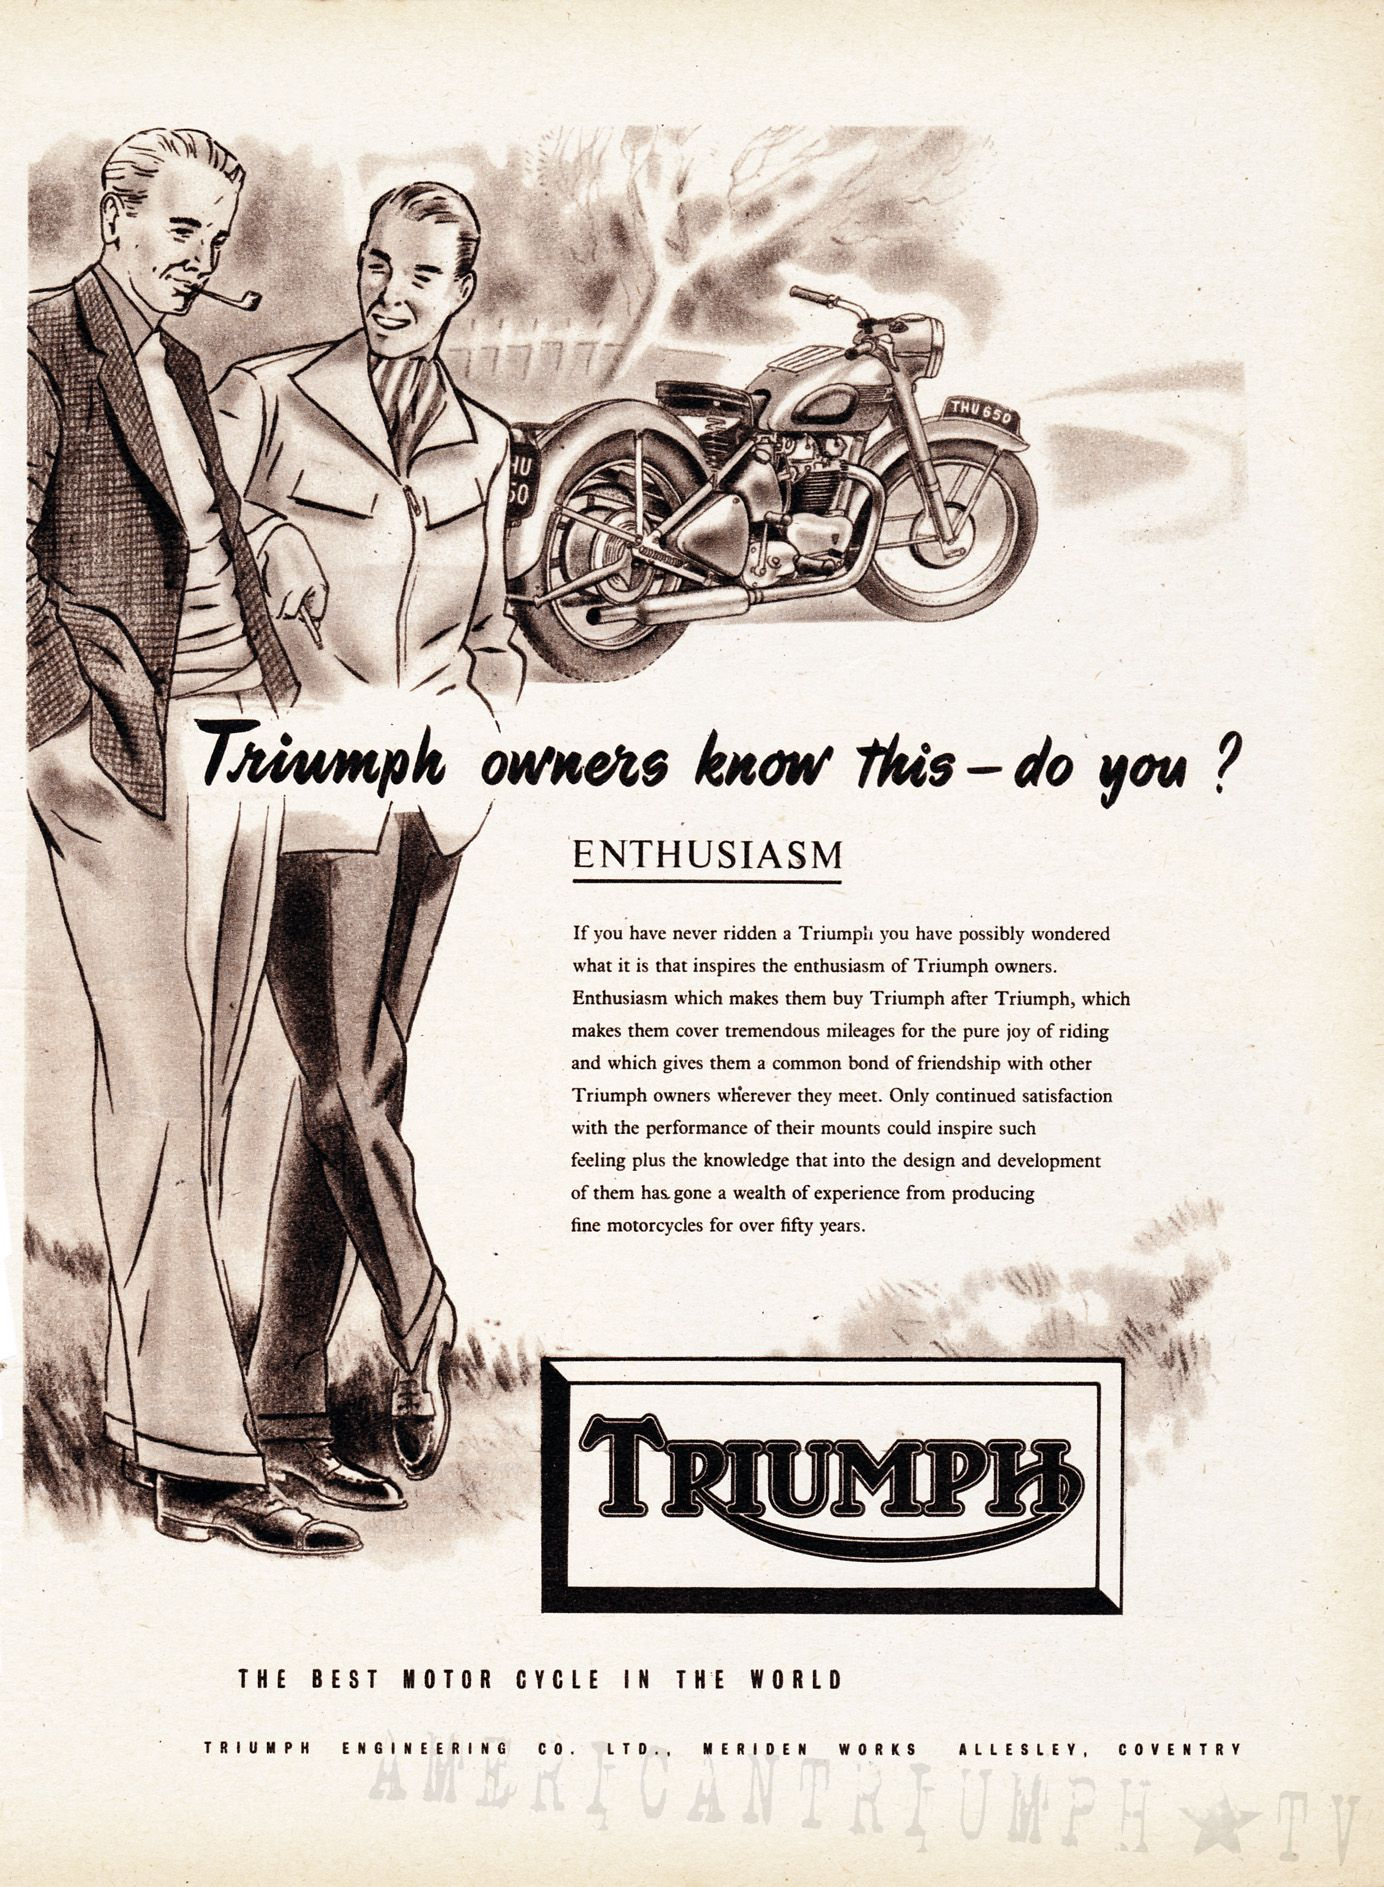 Vintage Triumph 1951 Motorcycle Motorbike Advertising Poster Art Repro Print A4